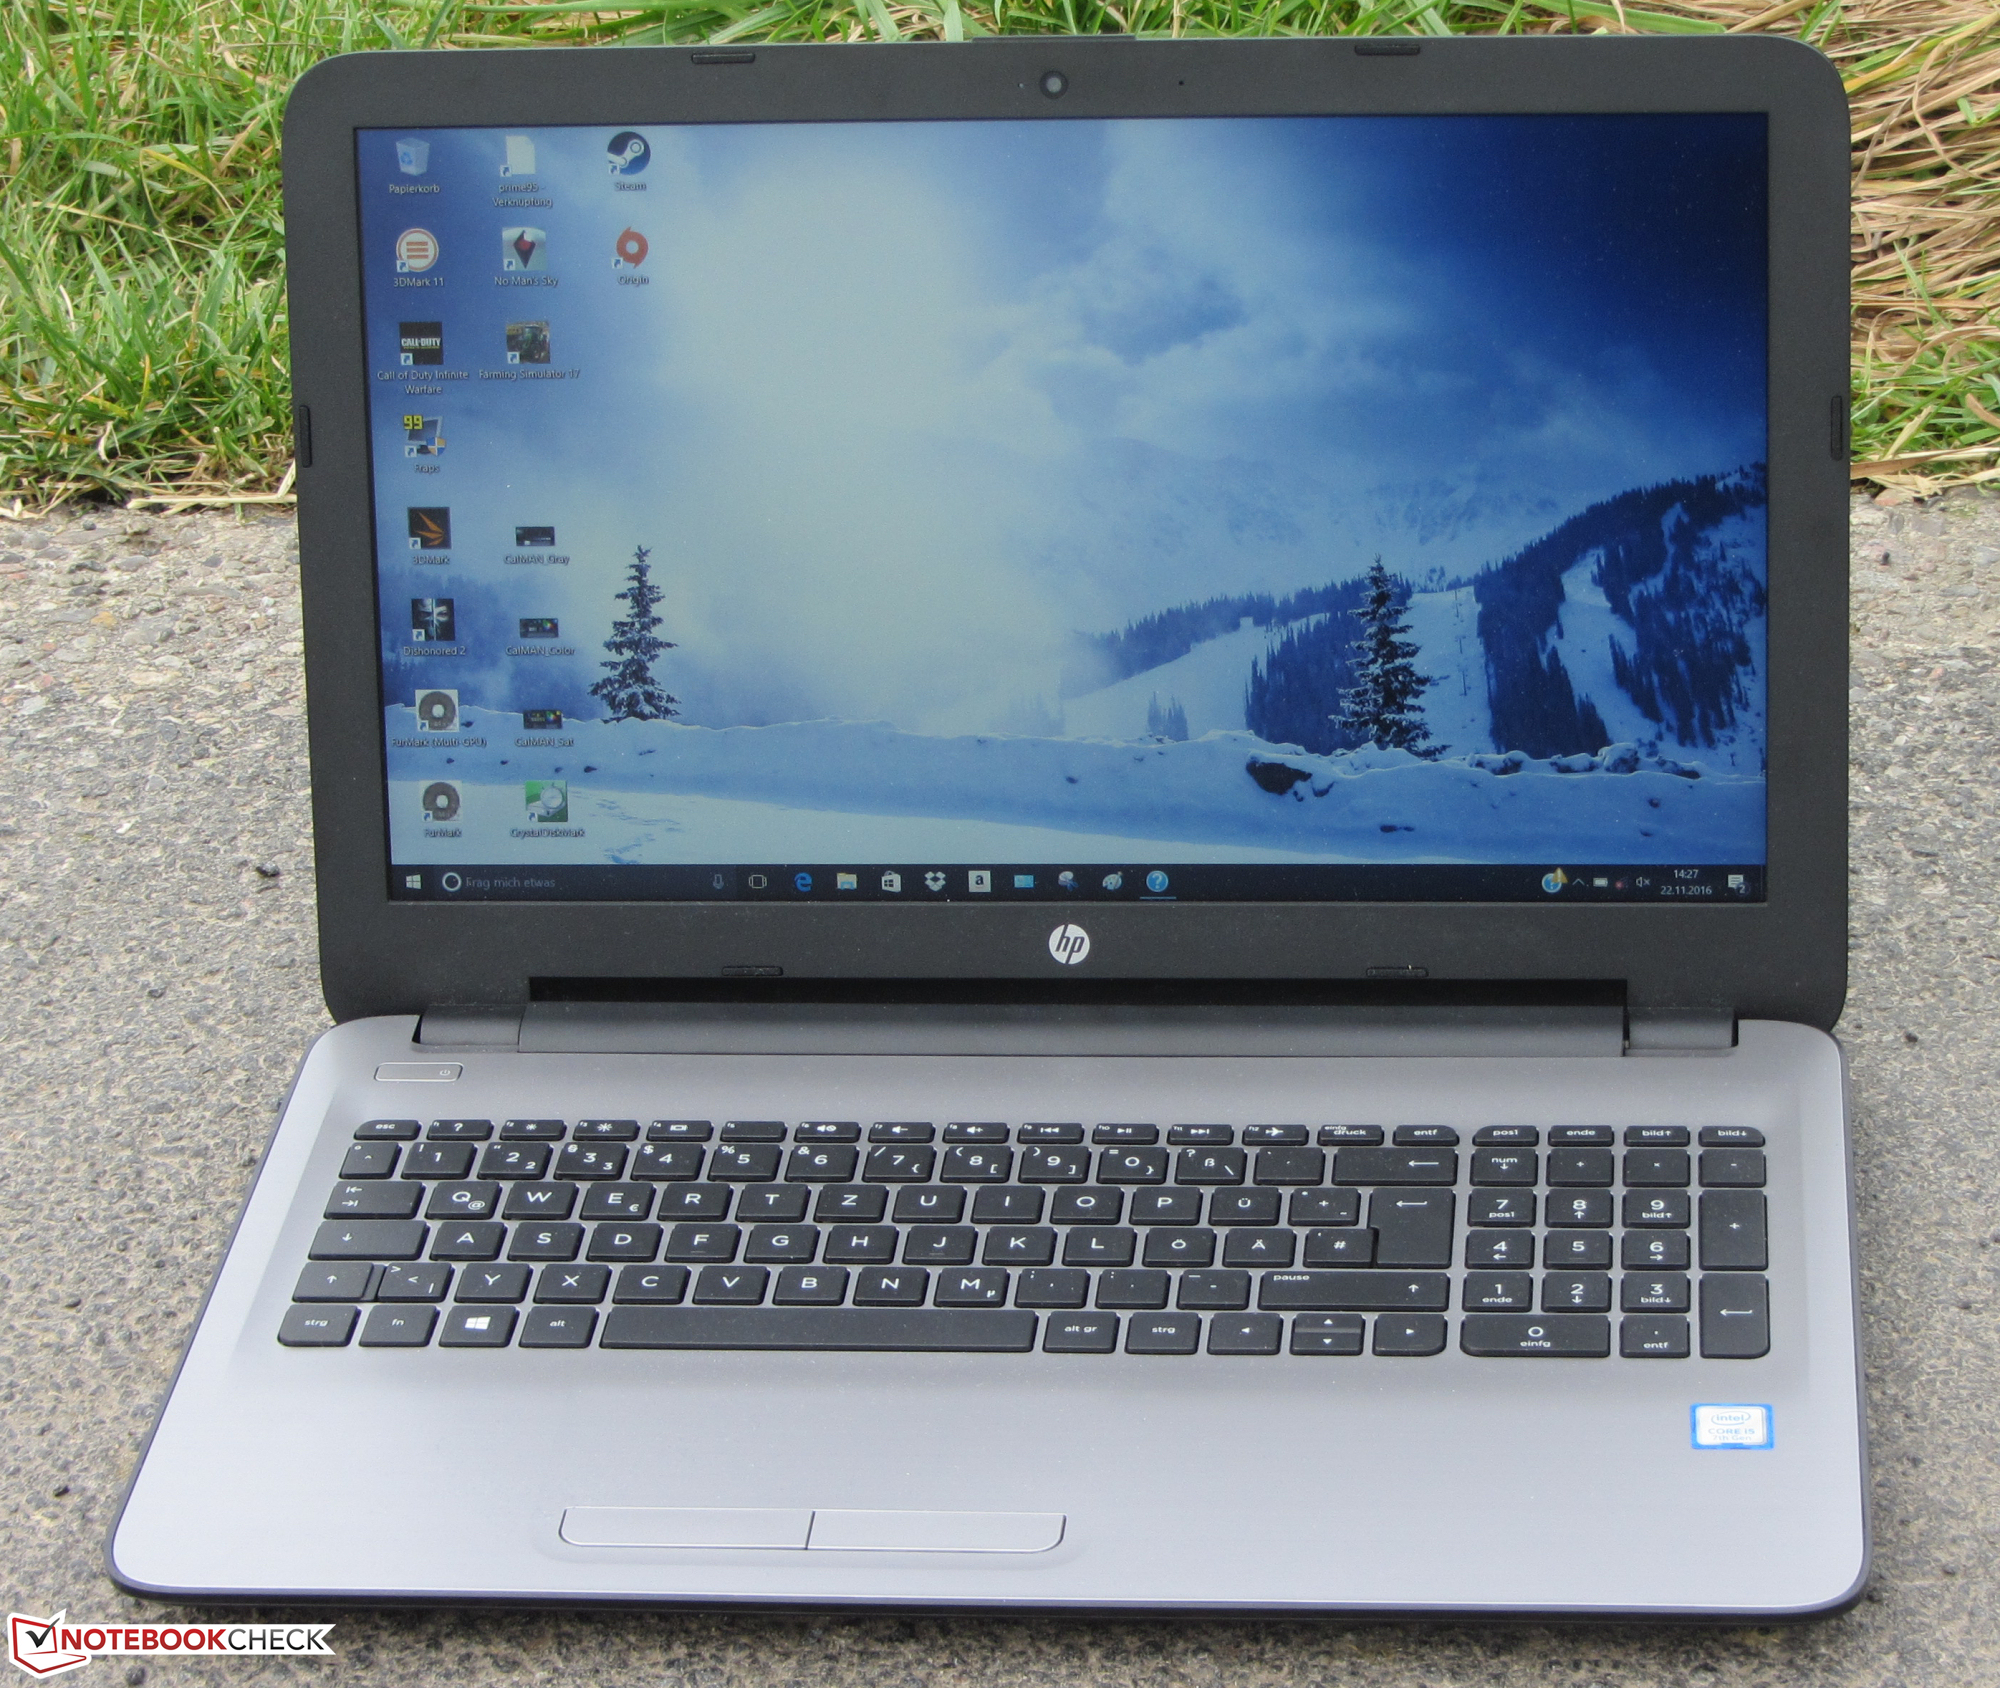 Hp notebook images - Full Resolution